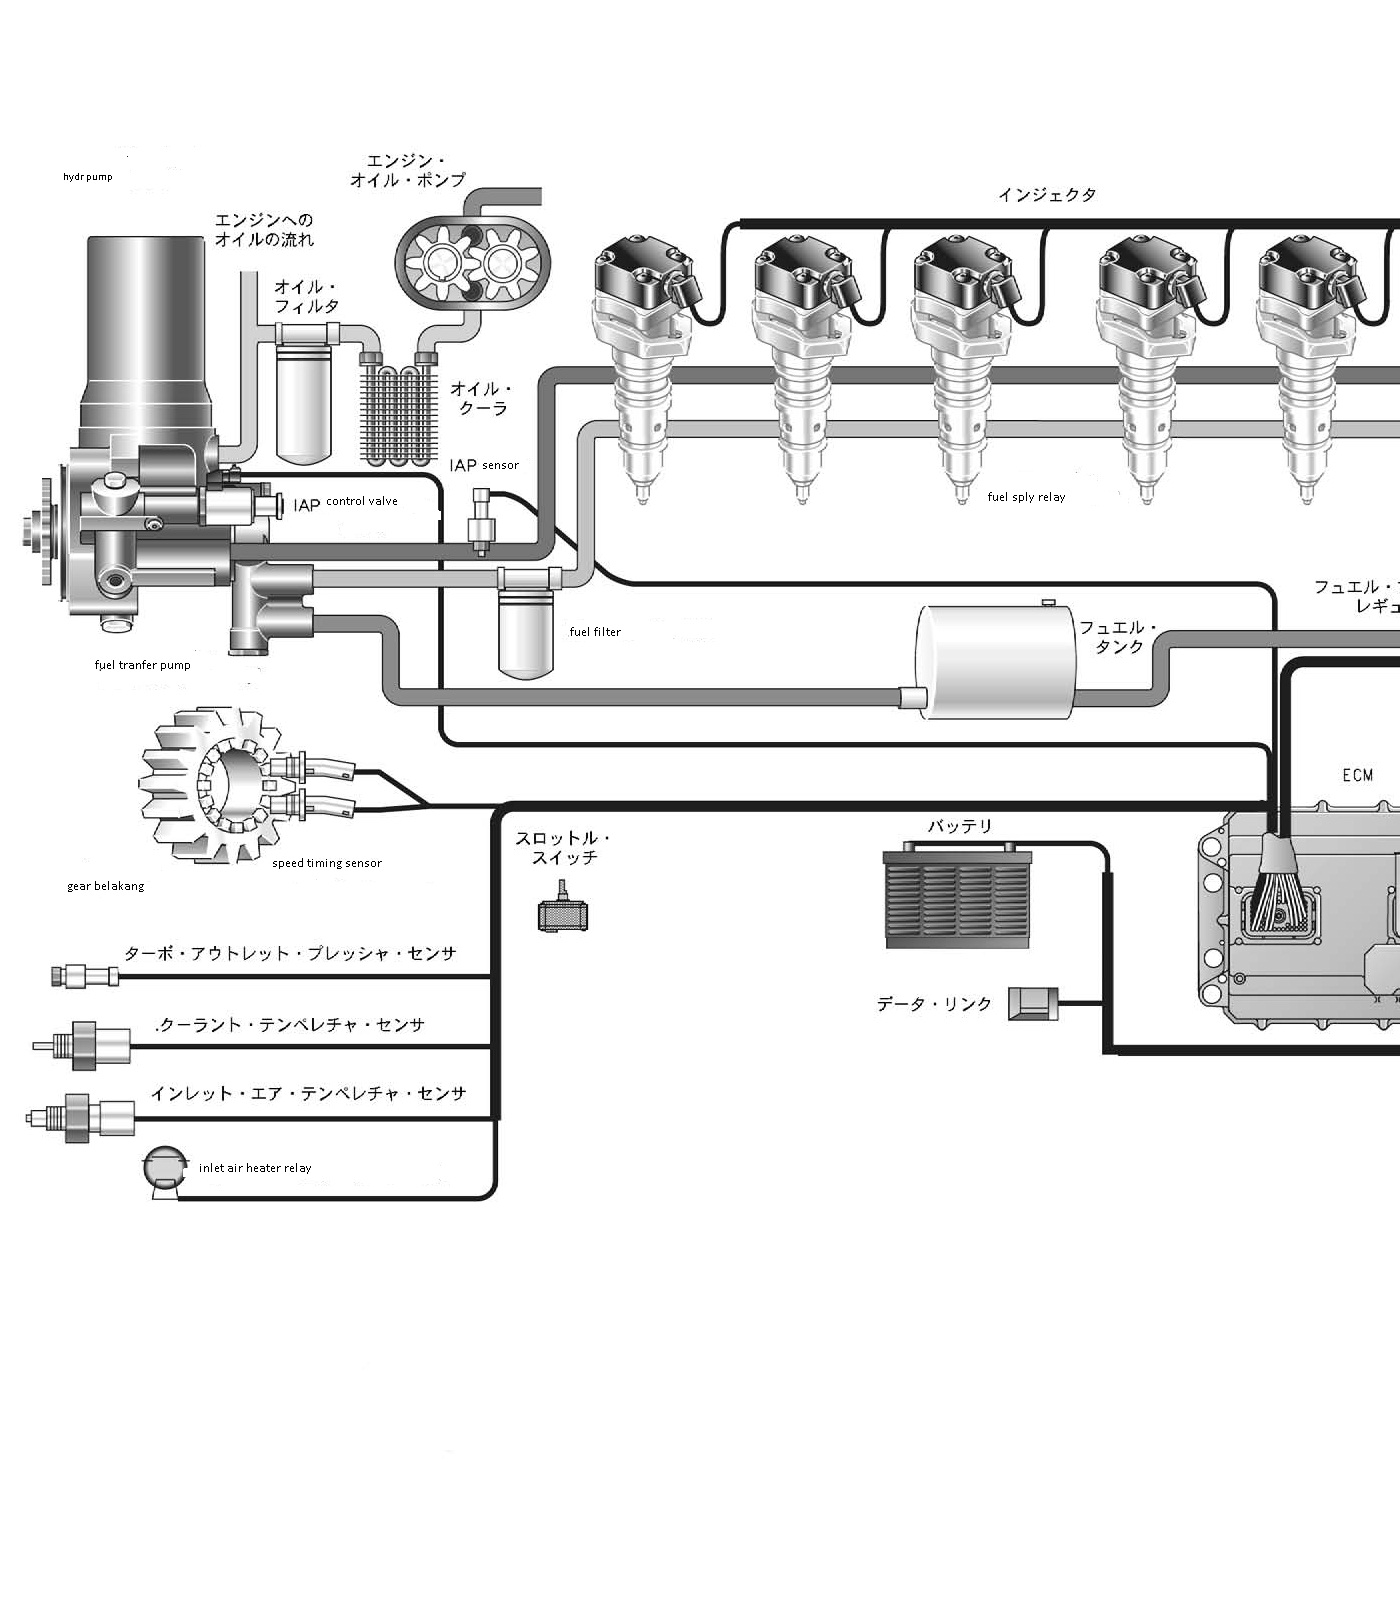 caterpillar 3176 engine diagram